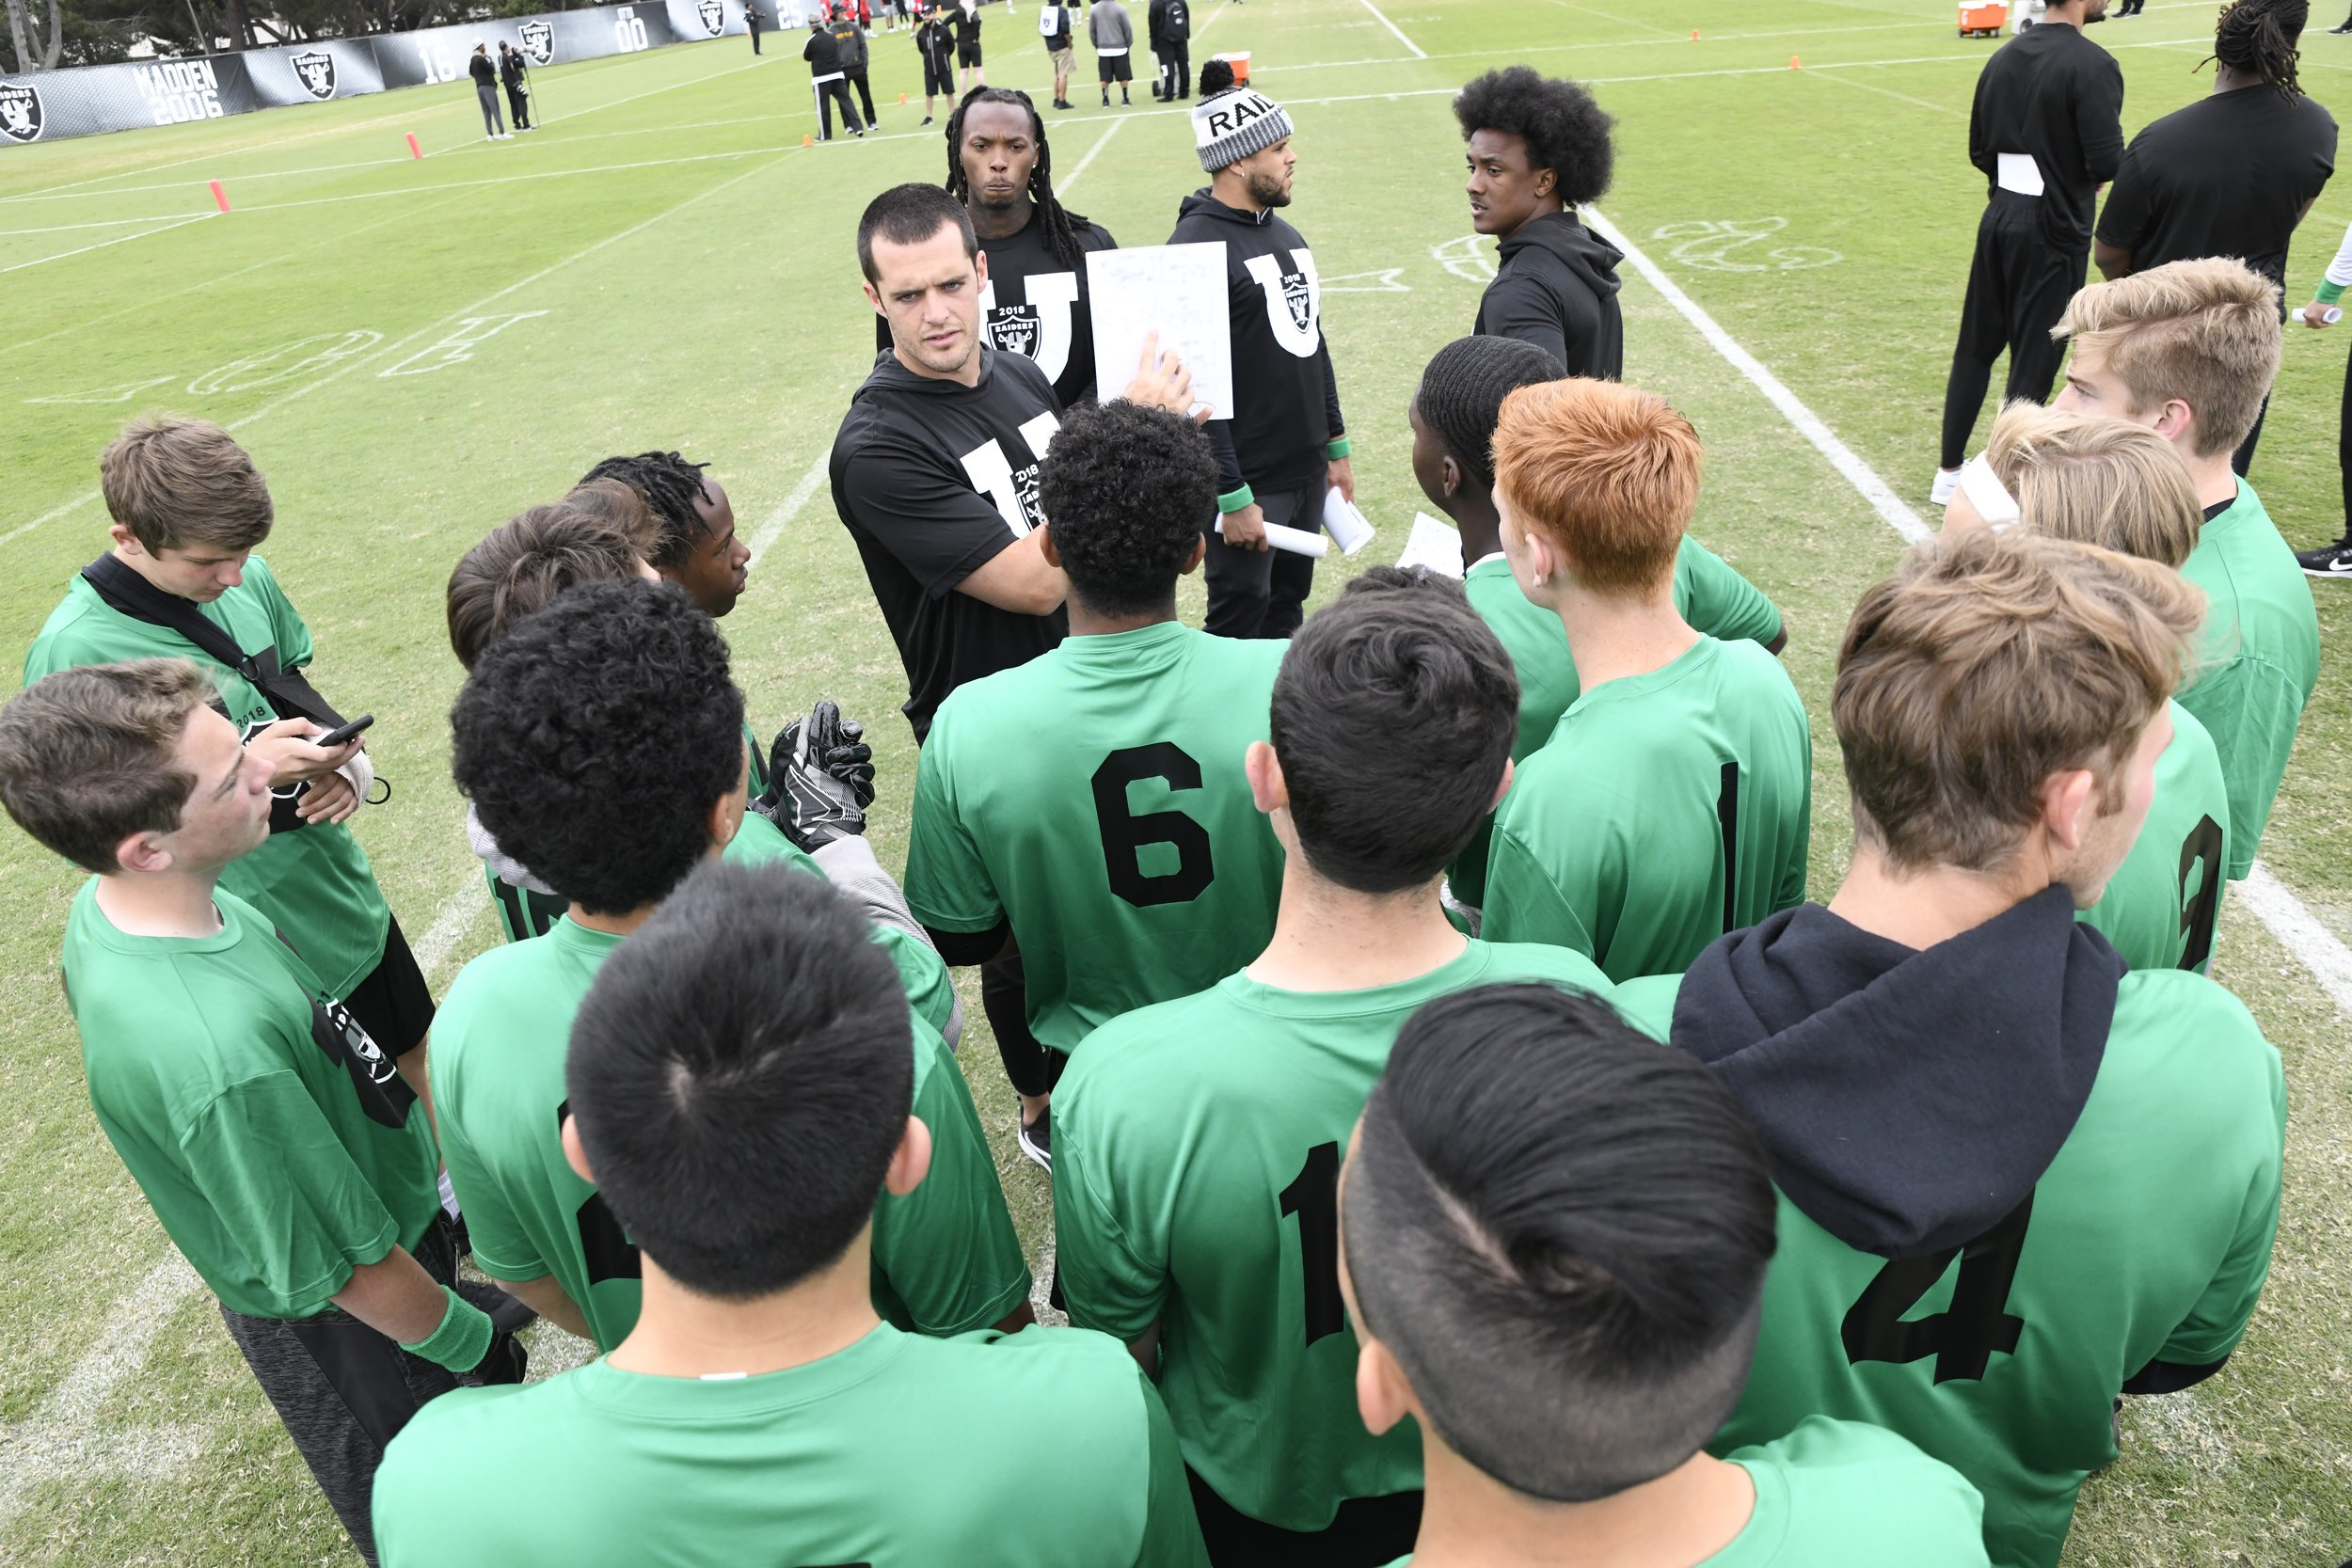 Copy of Oakland Raiders host Organized Team Activity (OTA) Day with local high schools